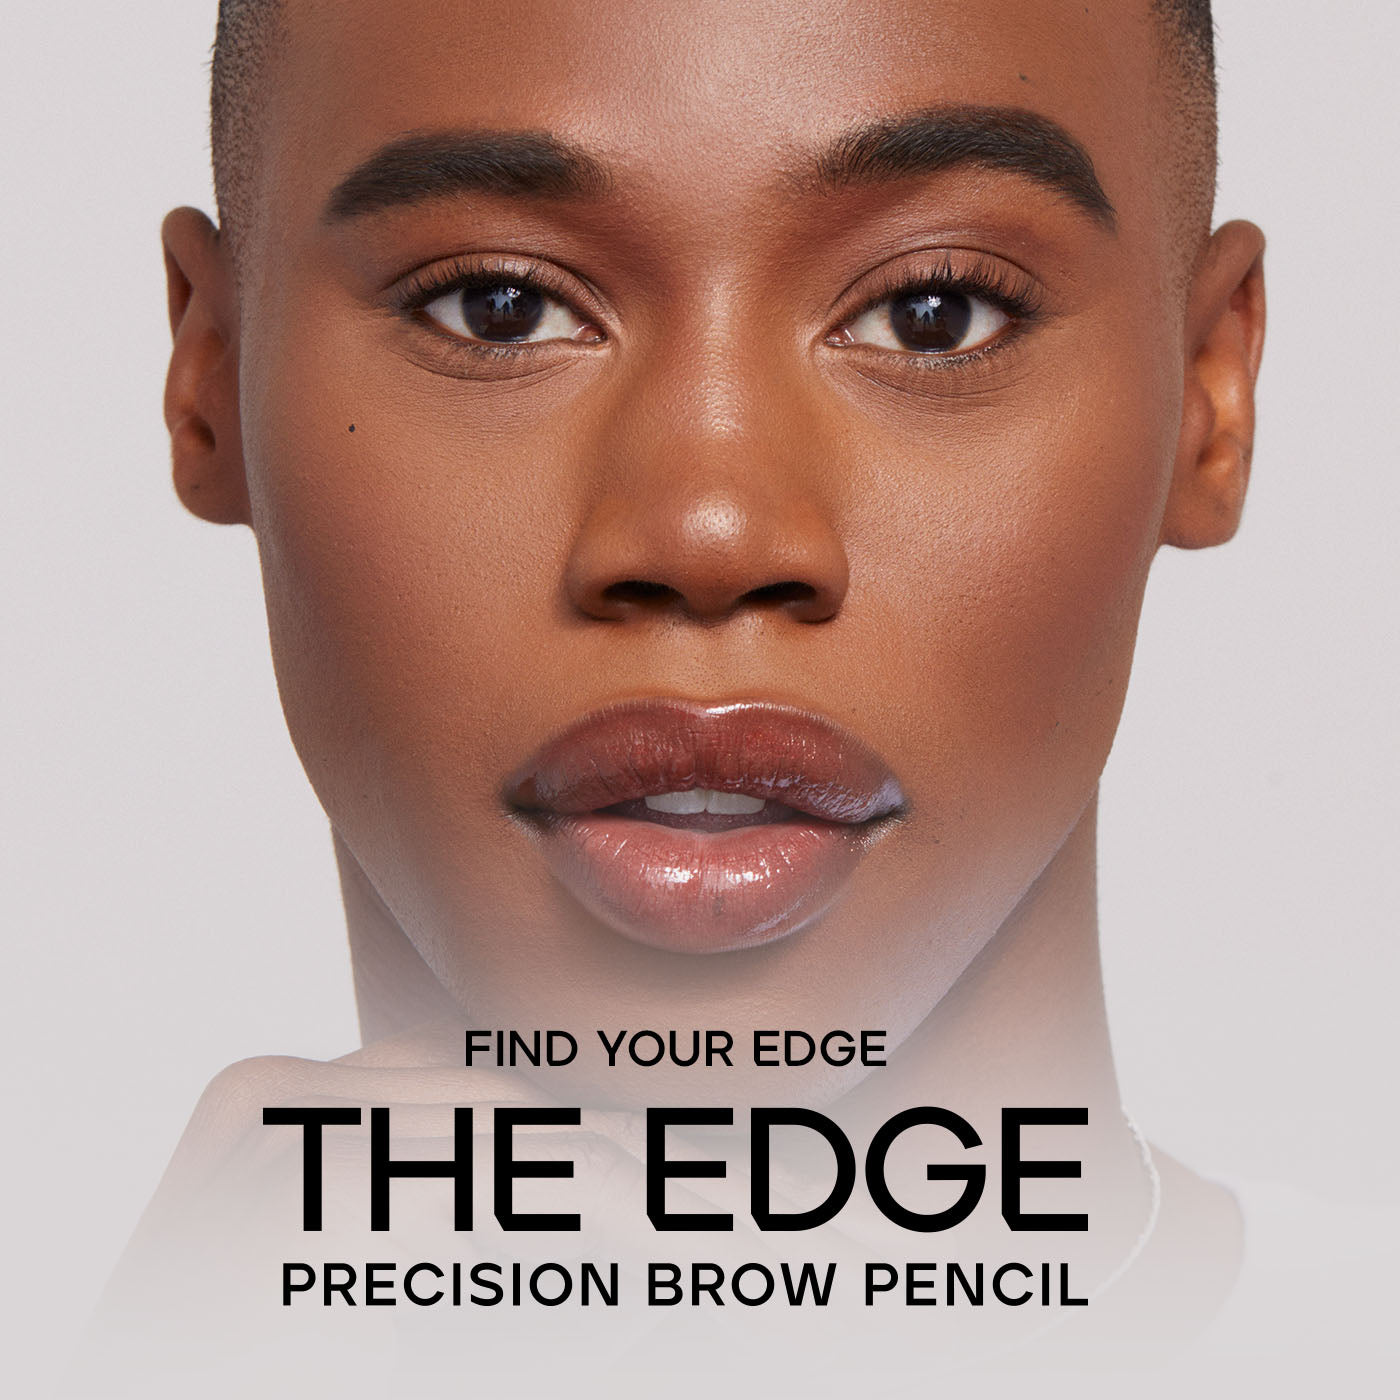 THE EDGE PRECISION BROW PENCIL video thumbnail